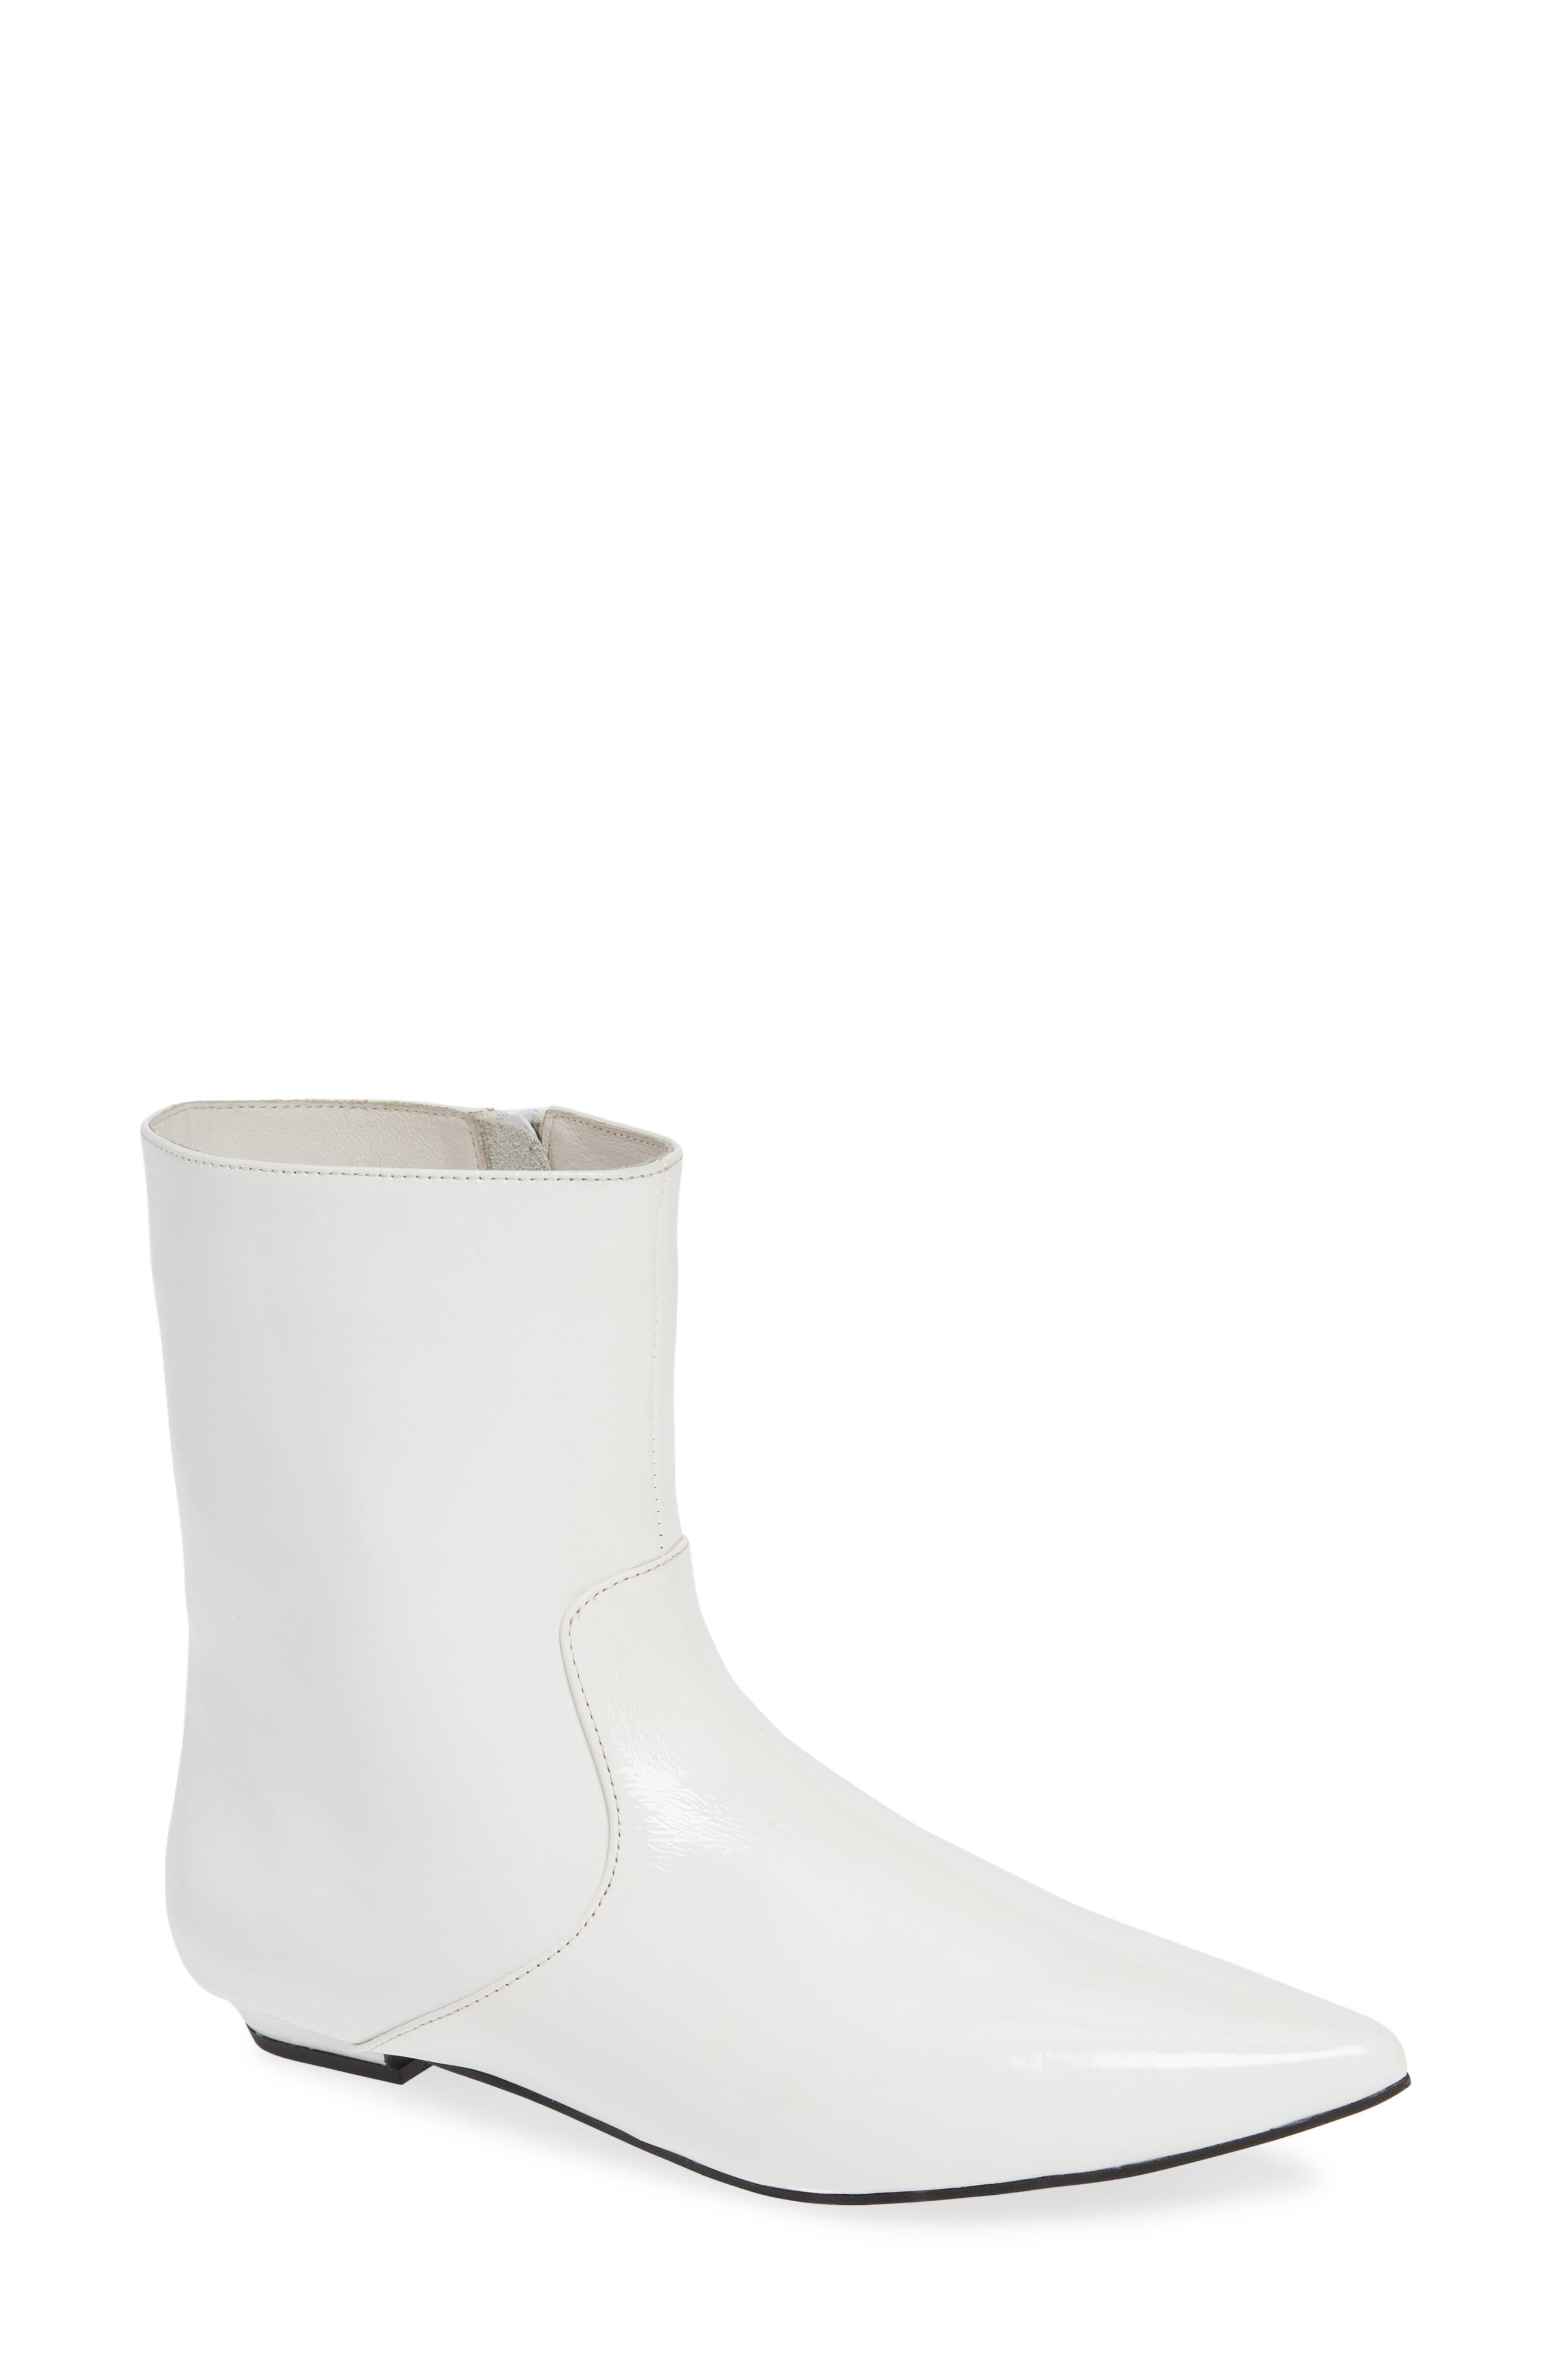 Jeffrey Campbell Galaxie Bootie, White